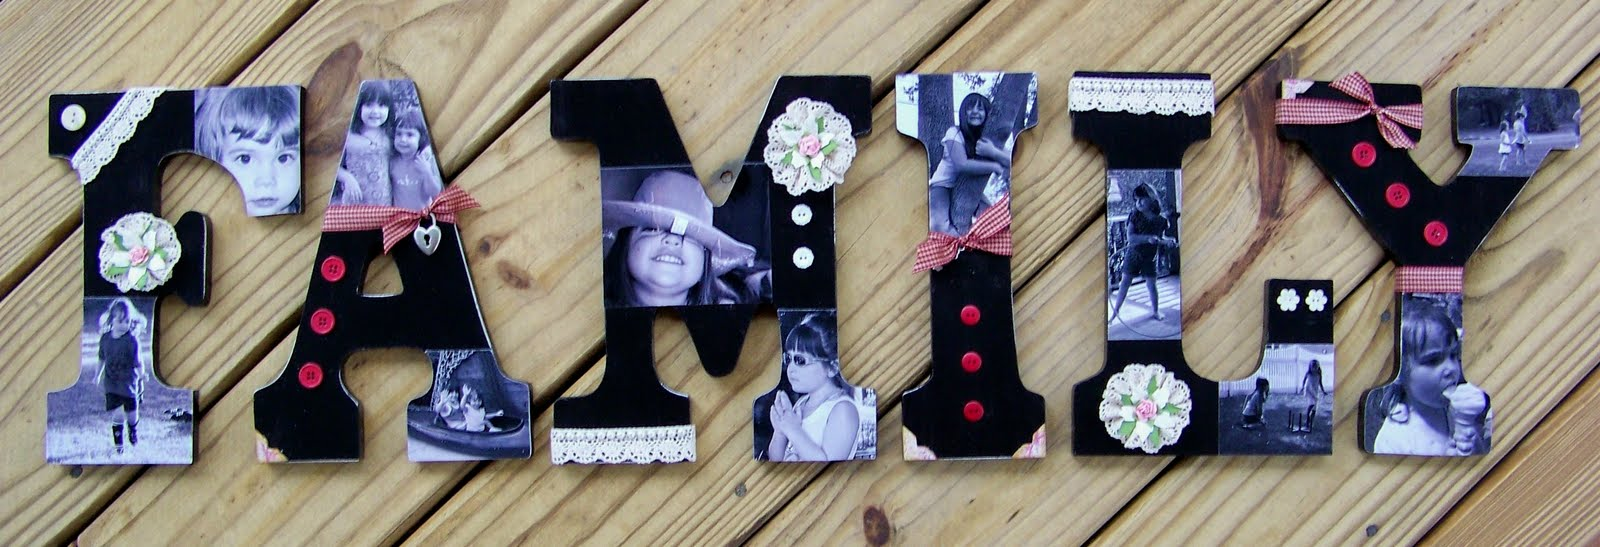 StuckOnUSketches: Decoupaged Wooden Letters Tutorial 6/17